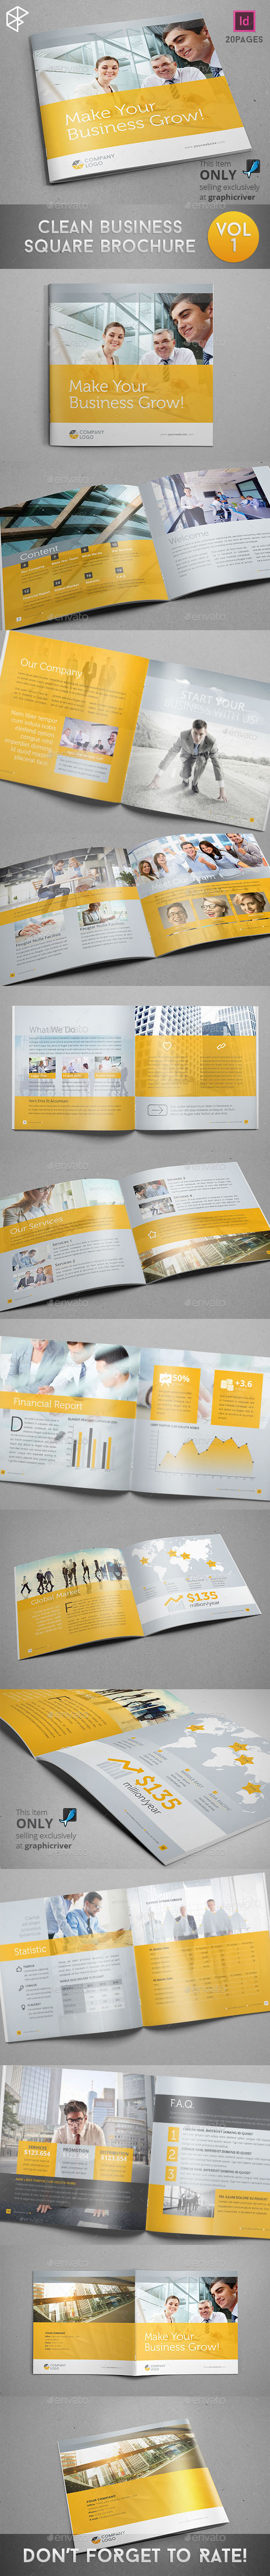 Clean Business Square Brochure - Corporate Brochures